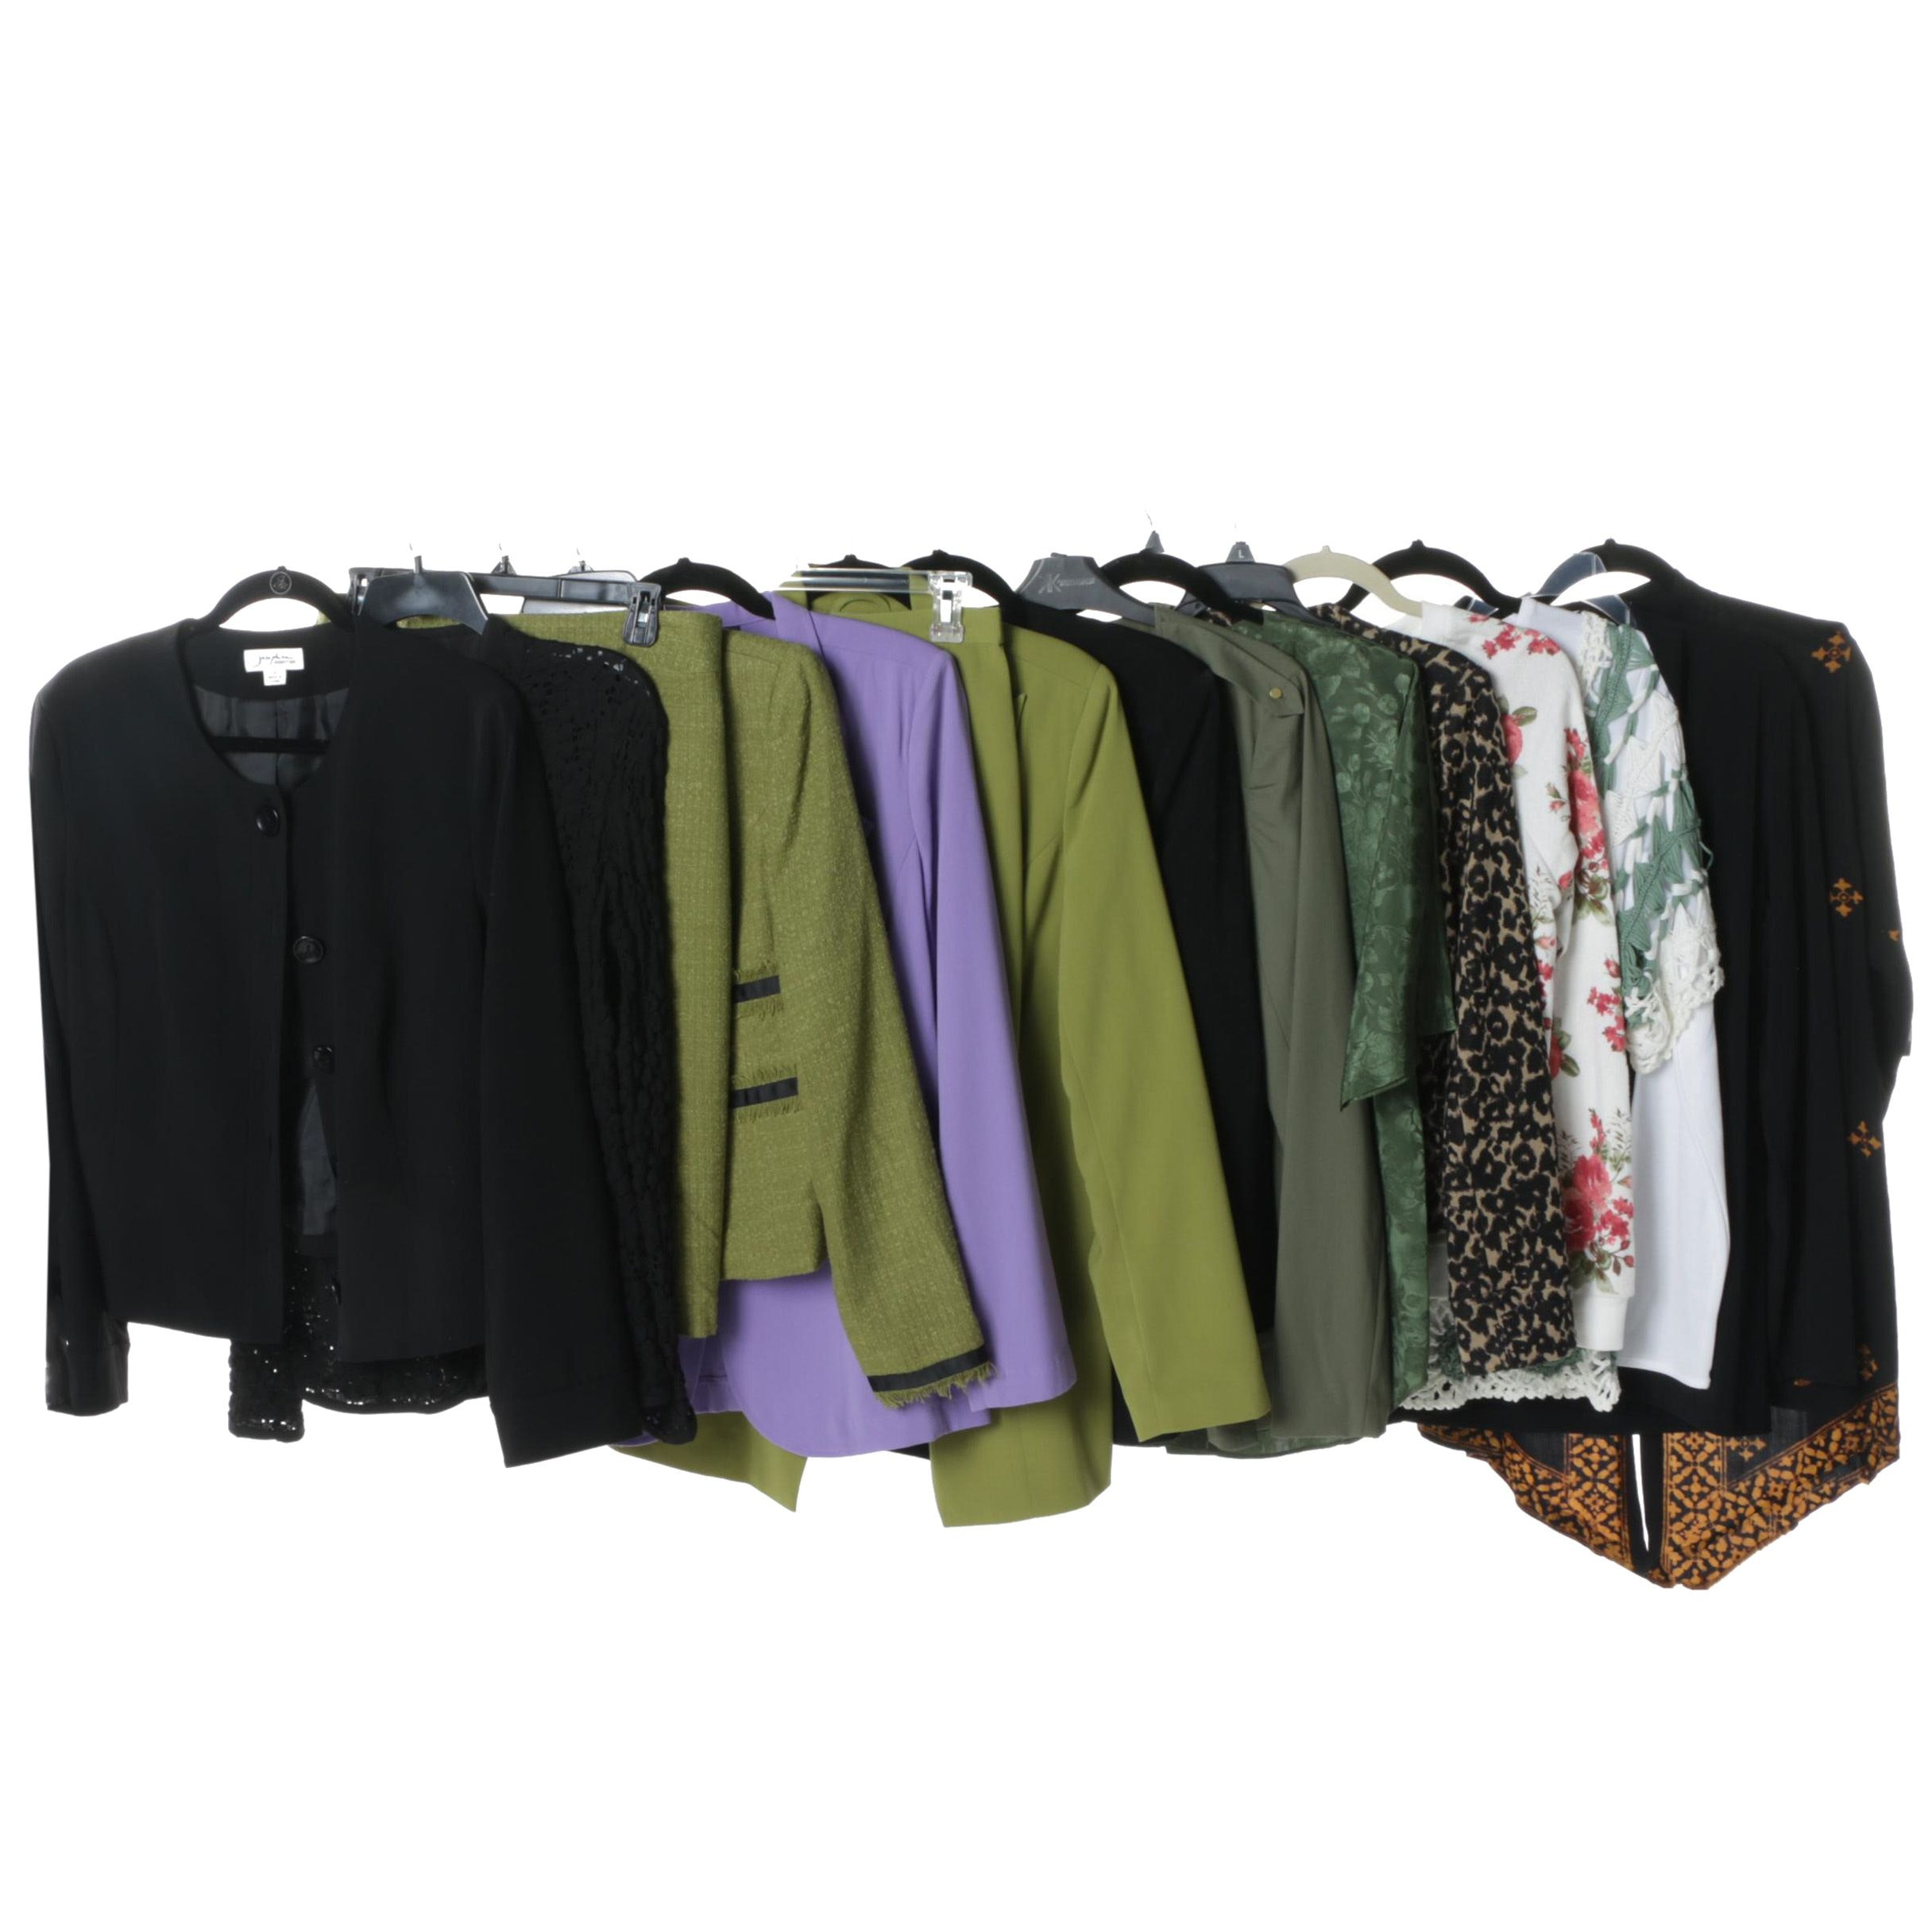 Women's Blouses and Suit Separates Including Eci and Kardashian Kollection